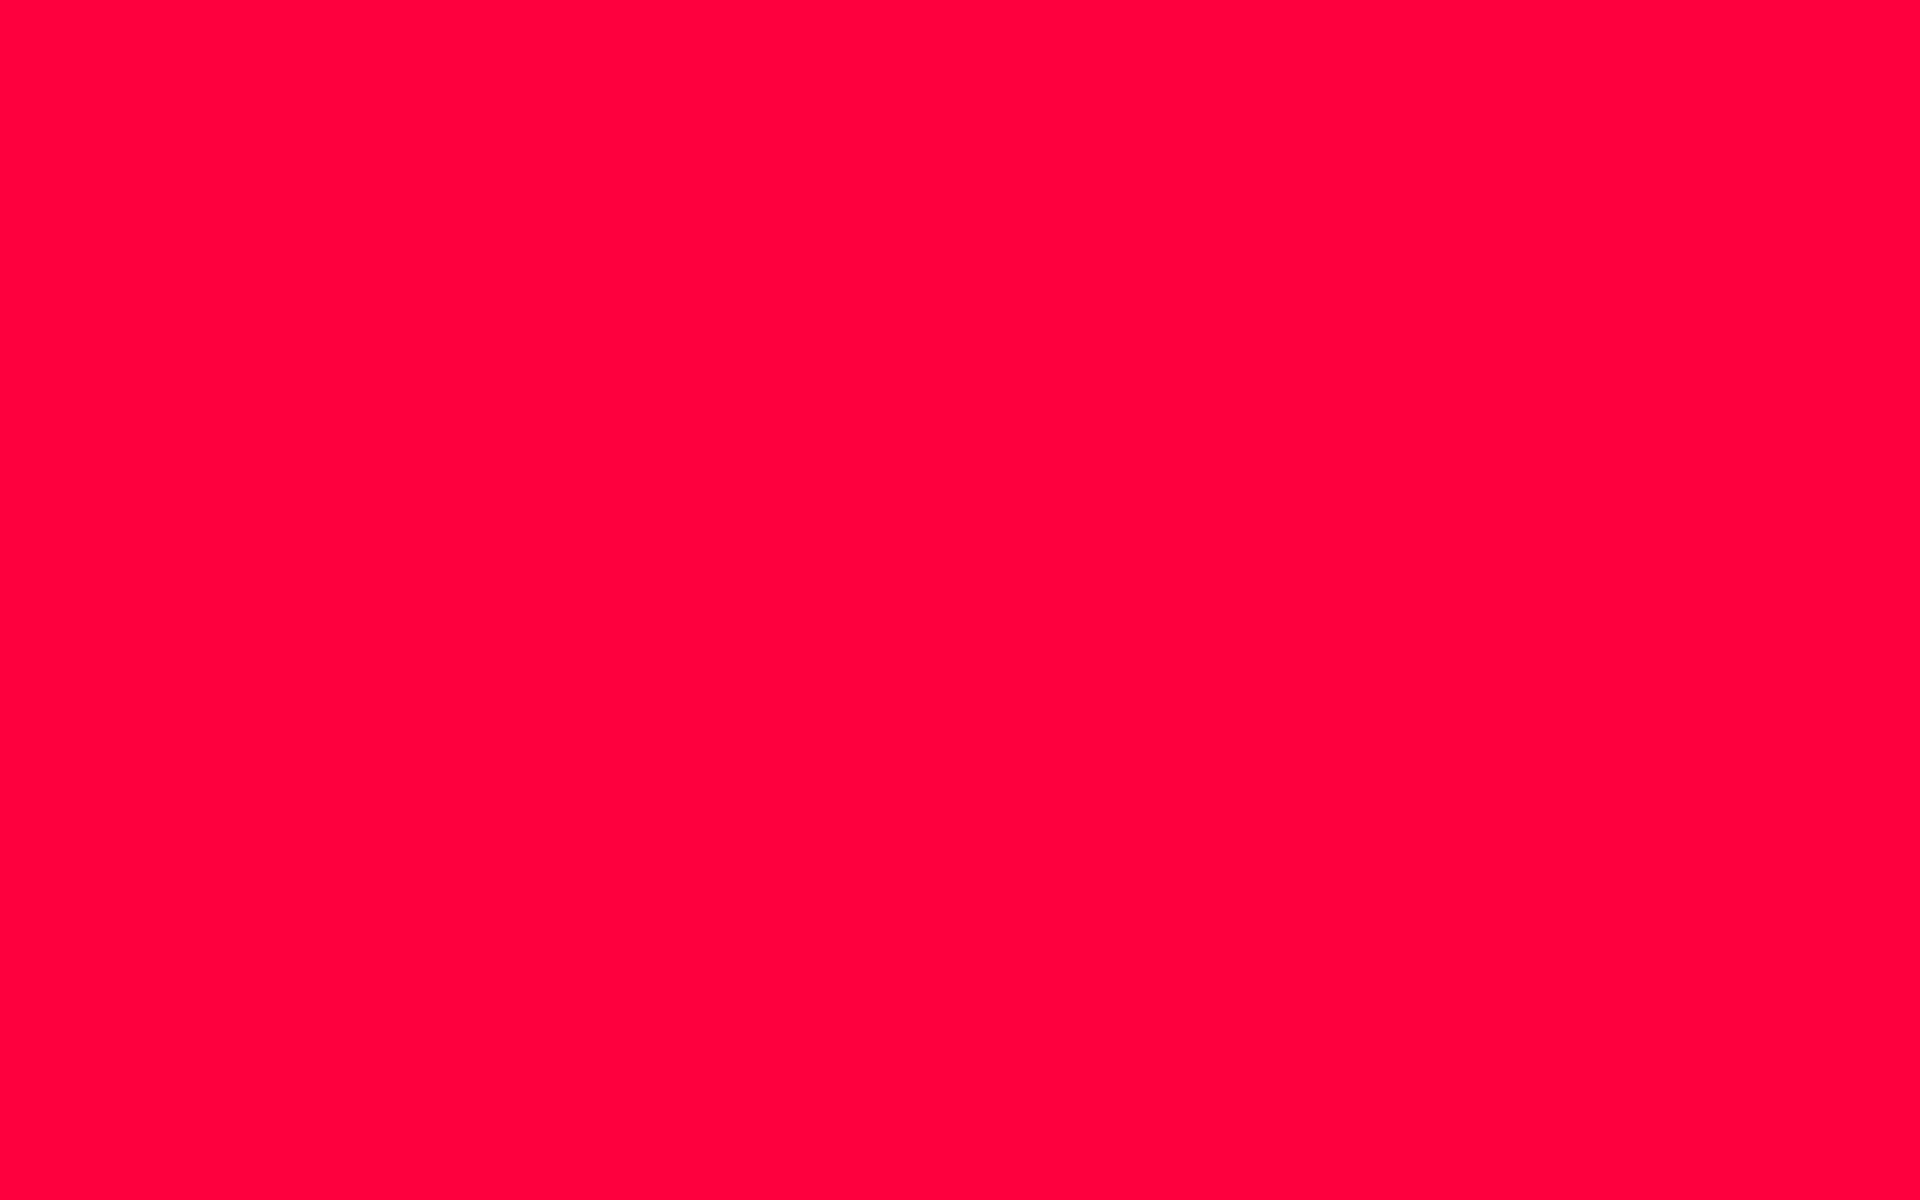 1920x1200 Electric Crimson Solid Color Background